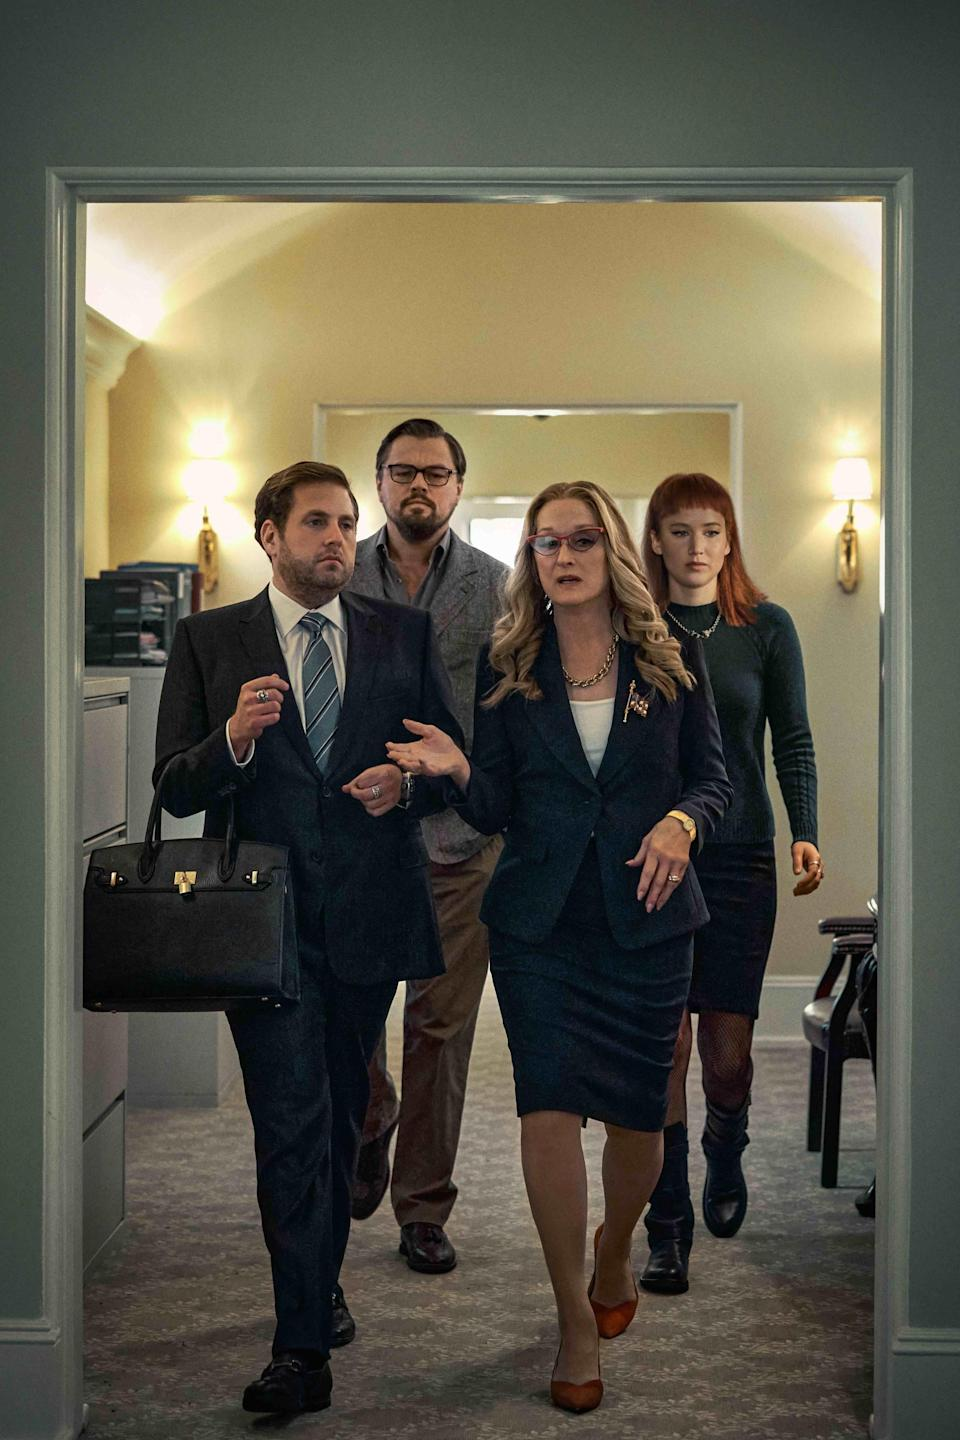 Meryl's character walking through a hallway as Jonah, who's holding her purse, follows along with Leo and Jennifer